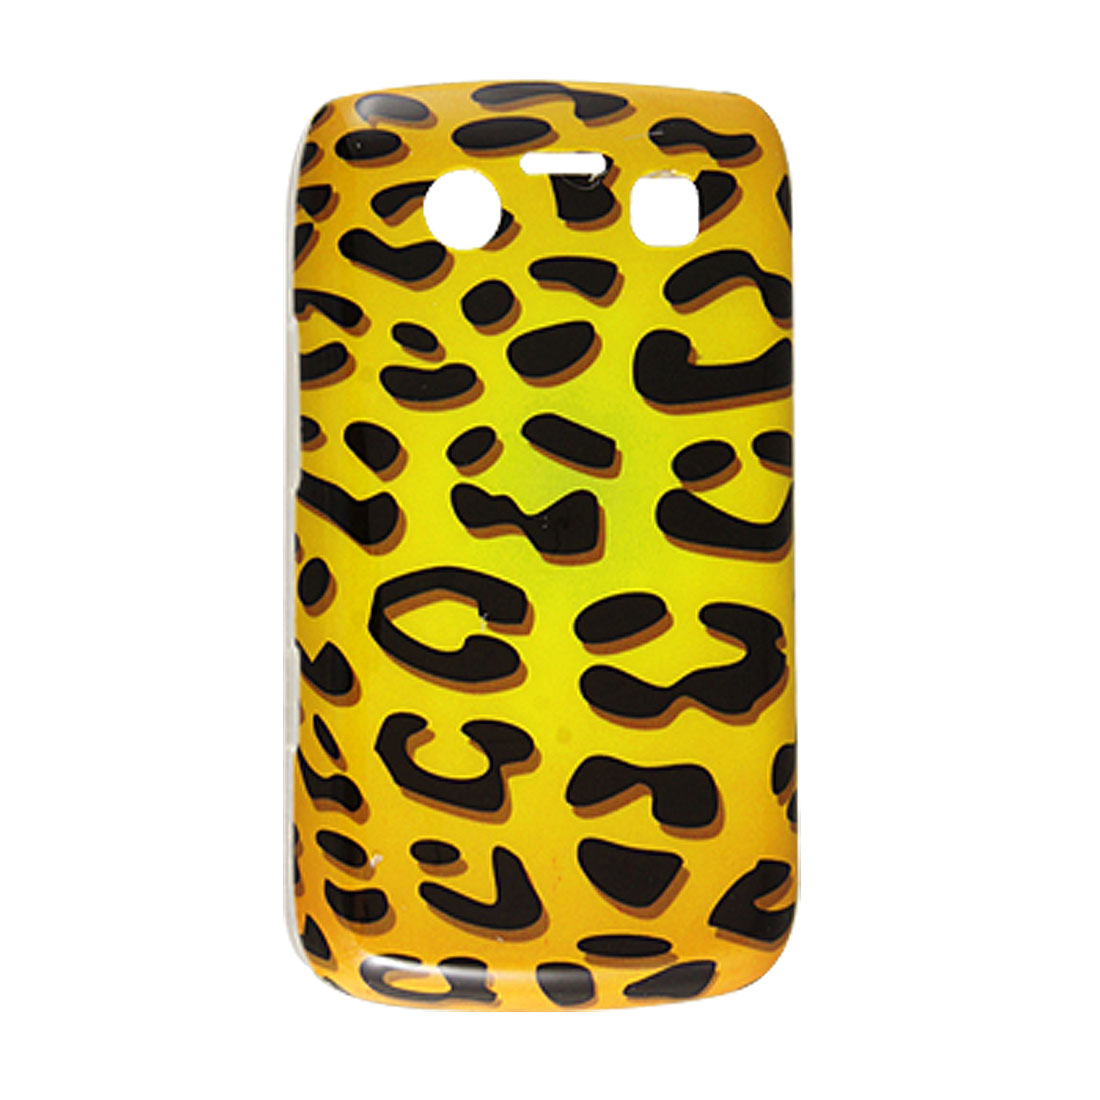 Yellow Black Leopard Print Back Case Cover for BlackBerry 9700 9020